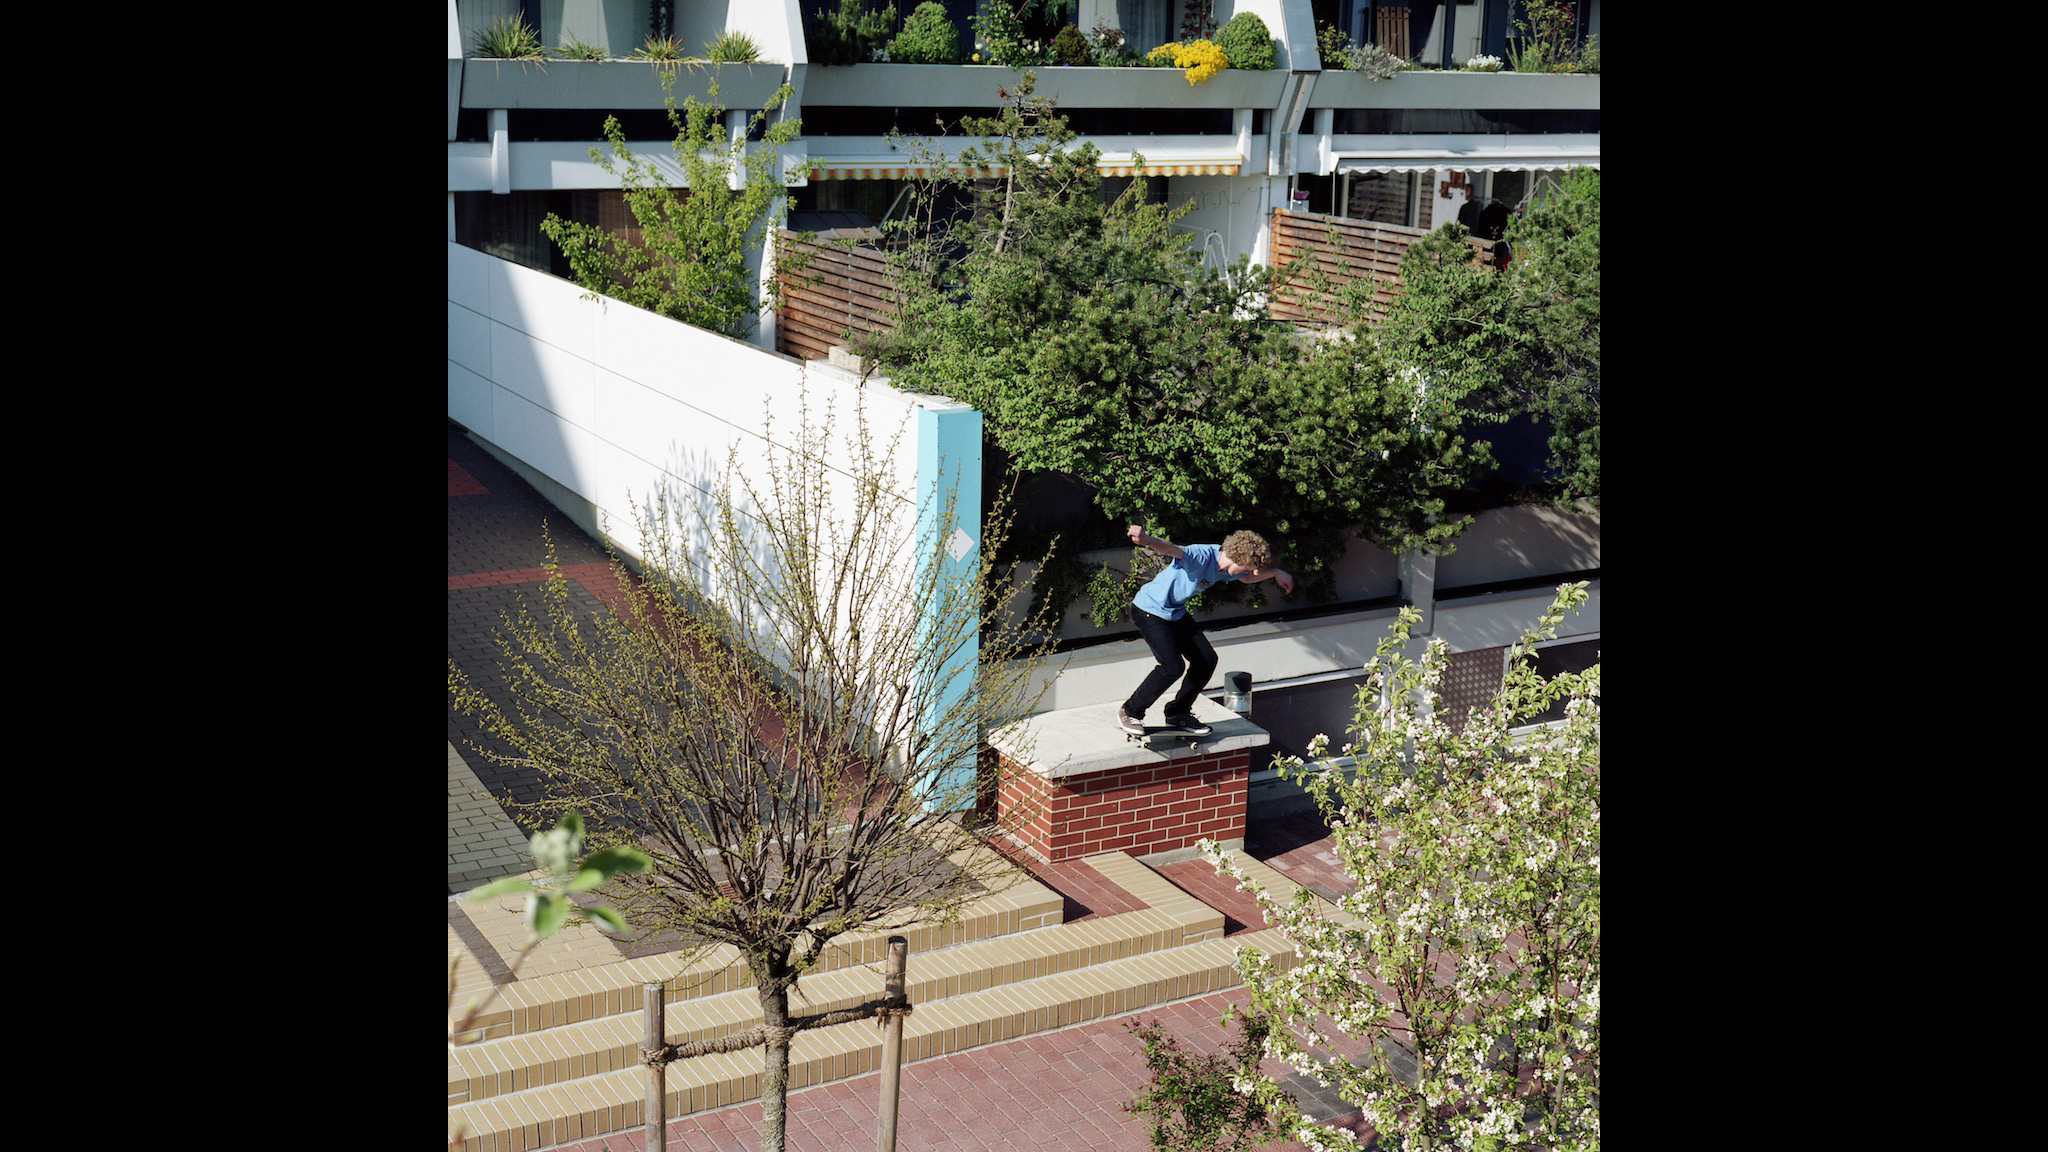 Conny Mirbach, backside nosegrind